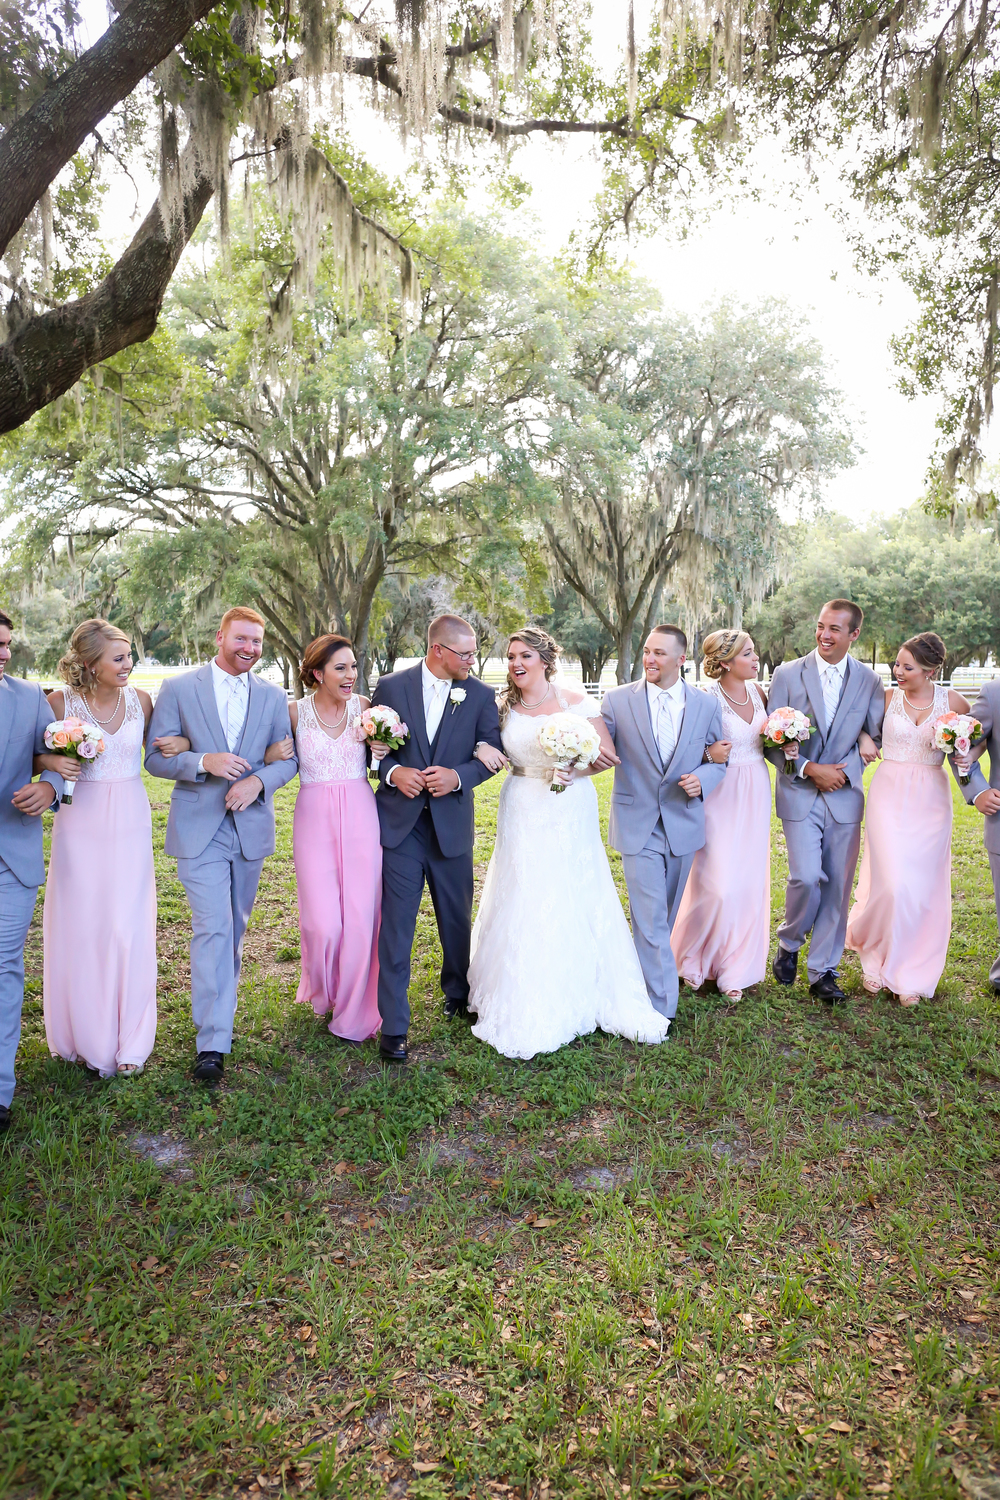 Bridesmaids wore lace and chiffon gowns in shades of soft pink, and gentlemen wore grey suits